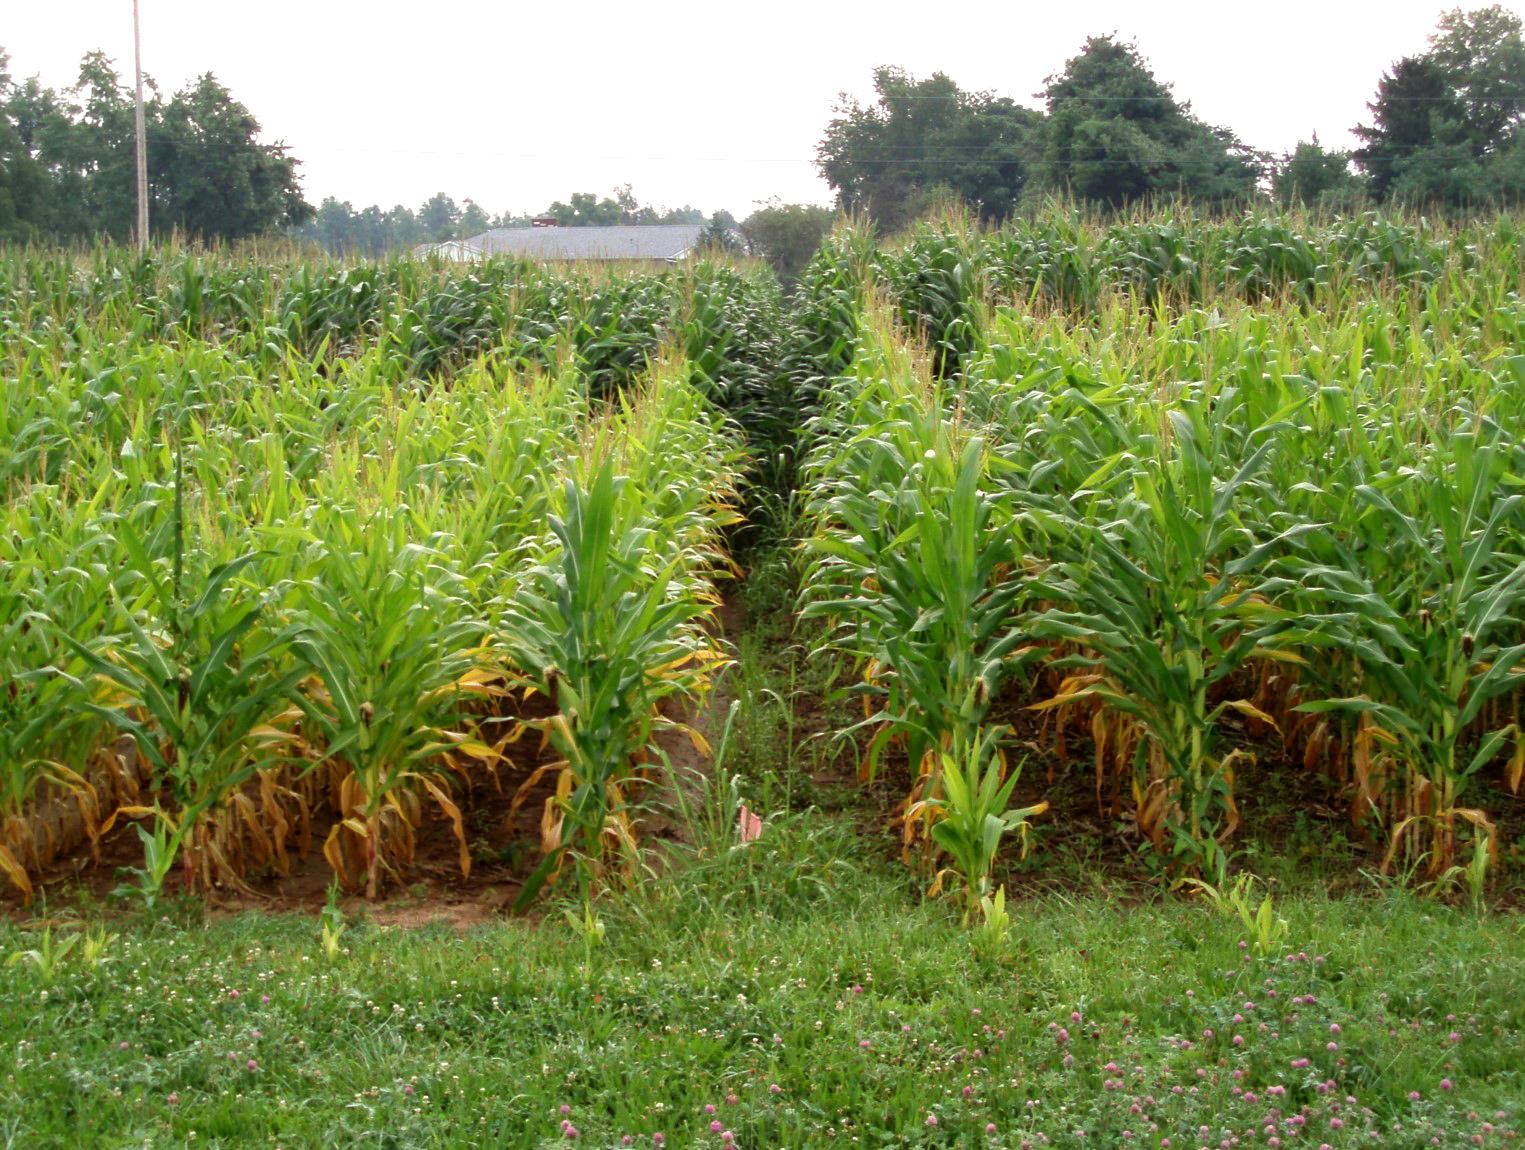 Corn growing at the Blevins research plots. Photo by John Grove, UK soil scientist.